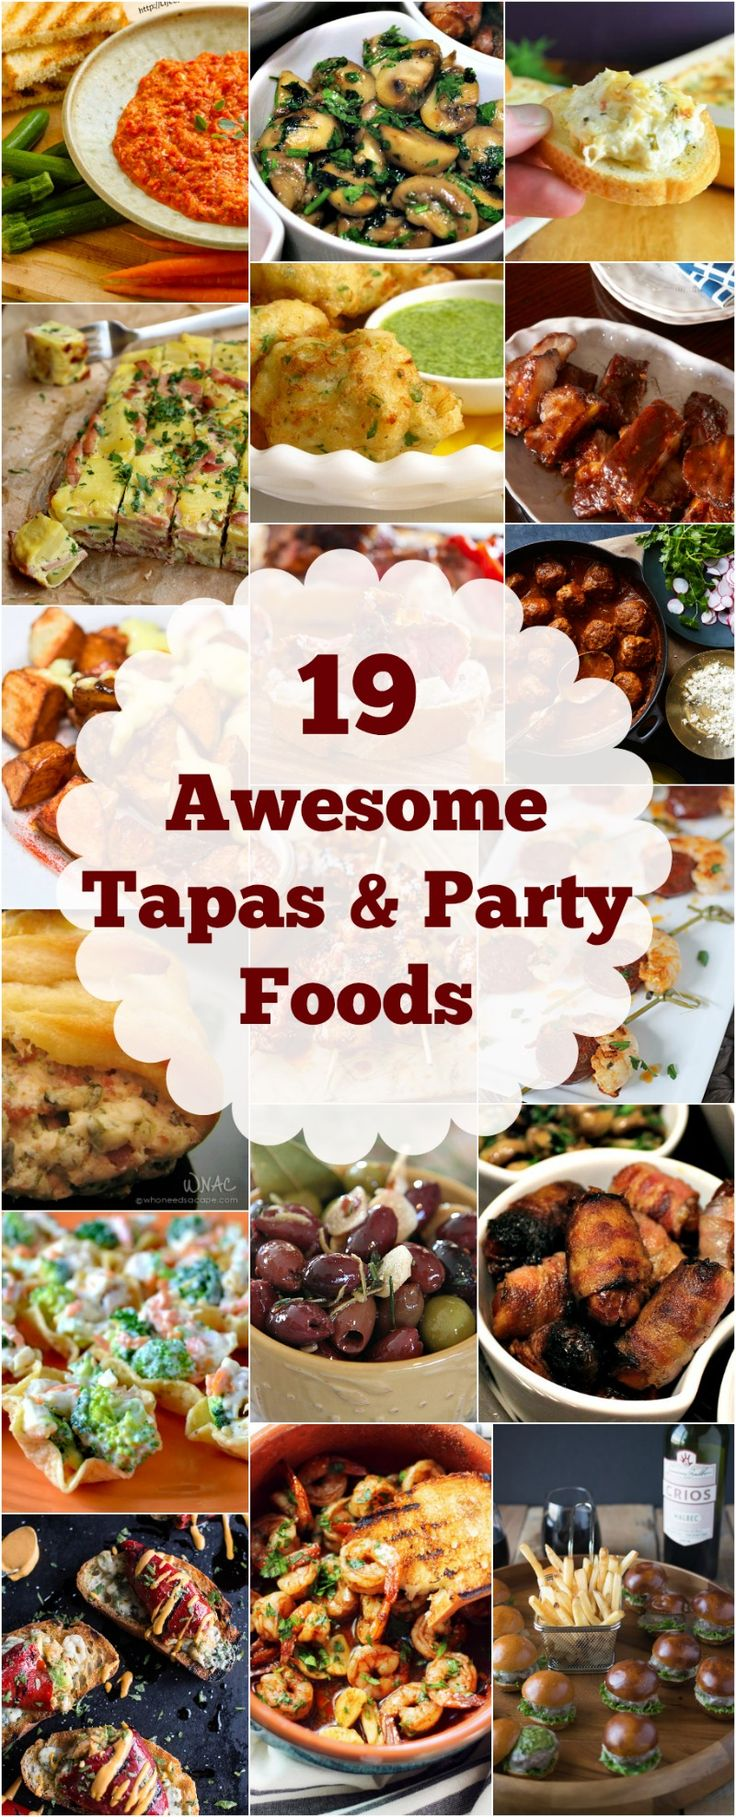 Easy tapas party recipes